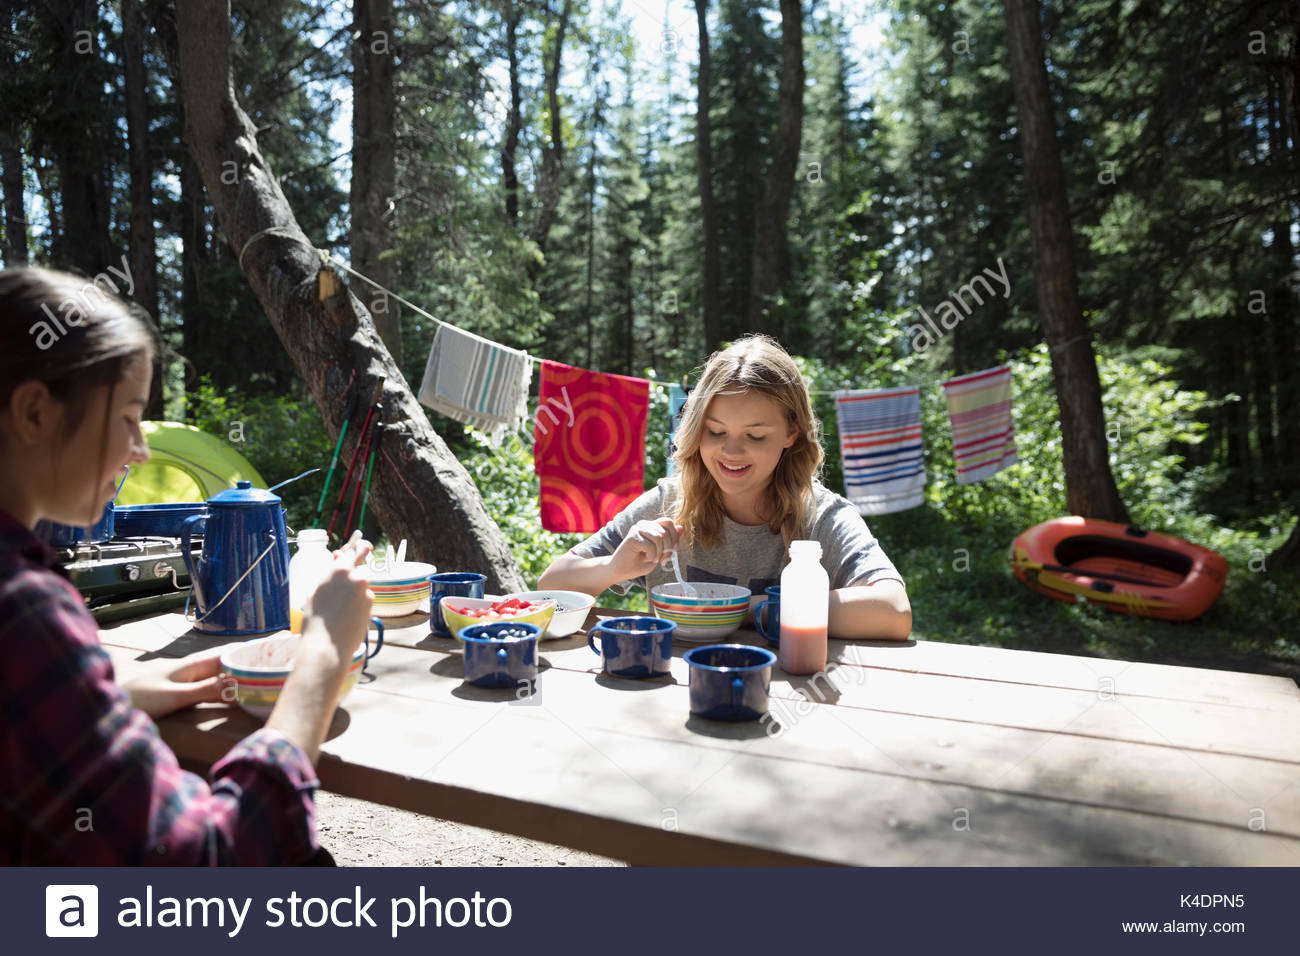 Teenage girl friends eating breakfast at sunny outdoor school campsite picnic table - Stock Image